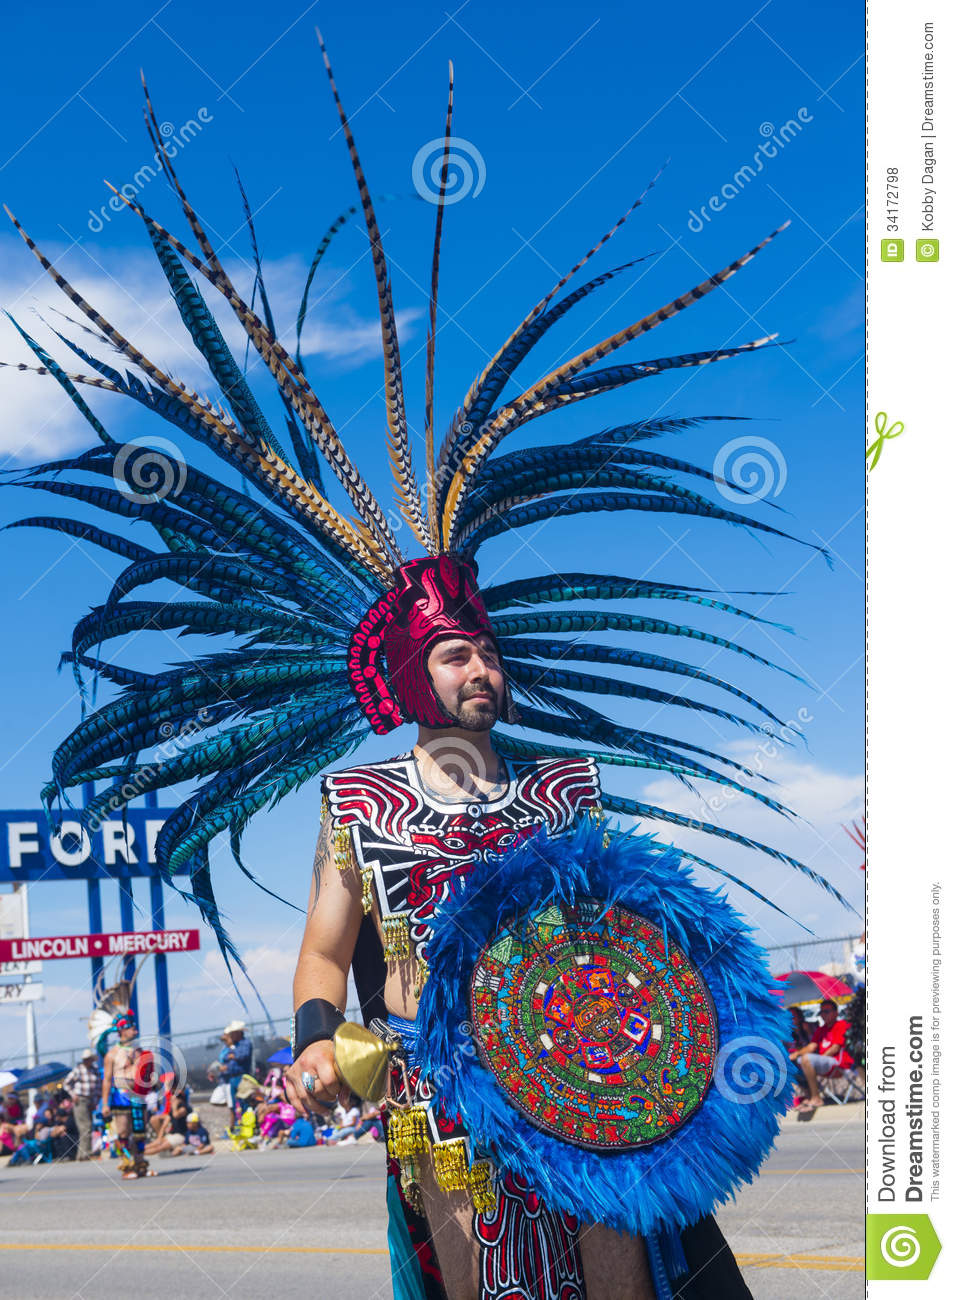 aztec tradition The aztec culture was the culture of the mexica people who migrated from the north and established their city-state in the region of central mexico the aztecs had a rich culture and religion which bore influence of various classical mesoamerican civilisations.